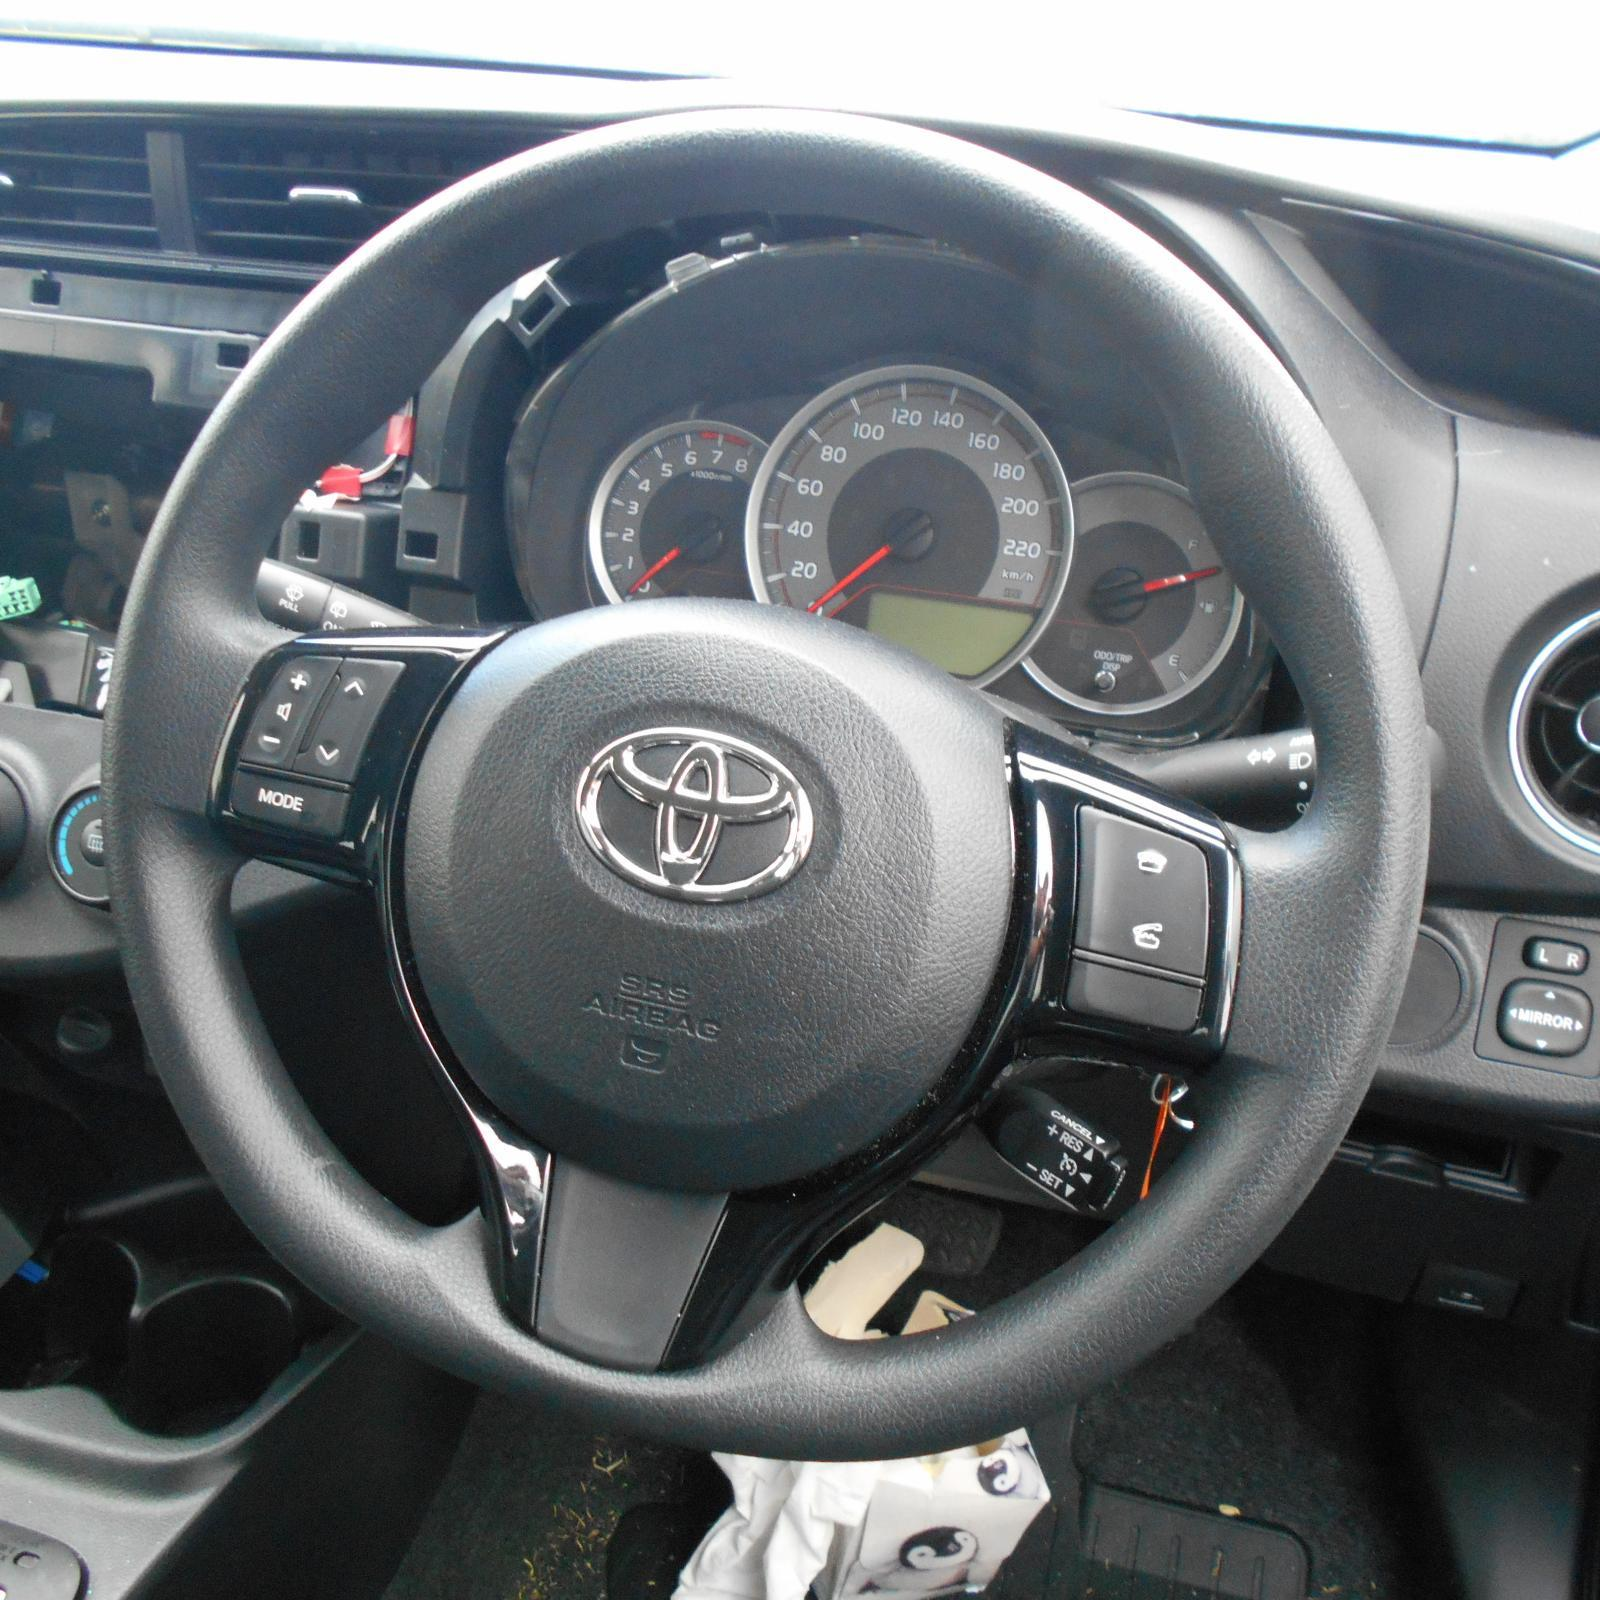 TOYOTA YARIS, Steering Wheel, VINYL, NCP13#, BLACK, 11/11-